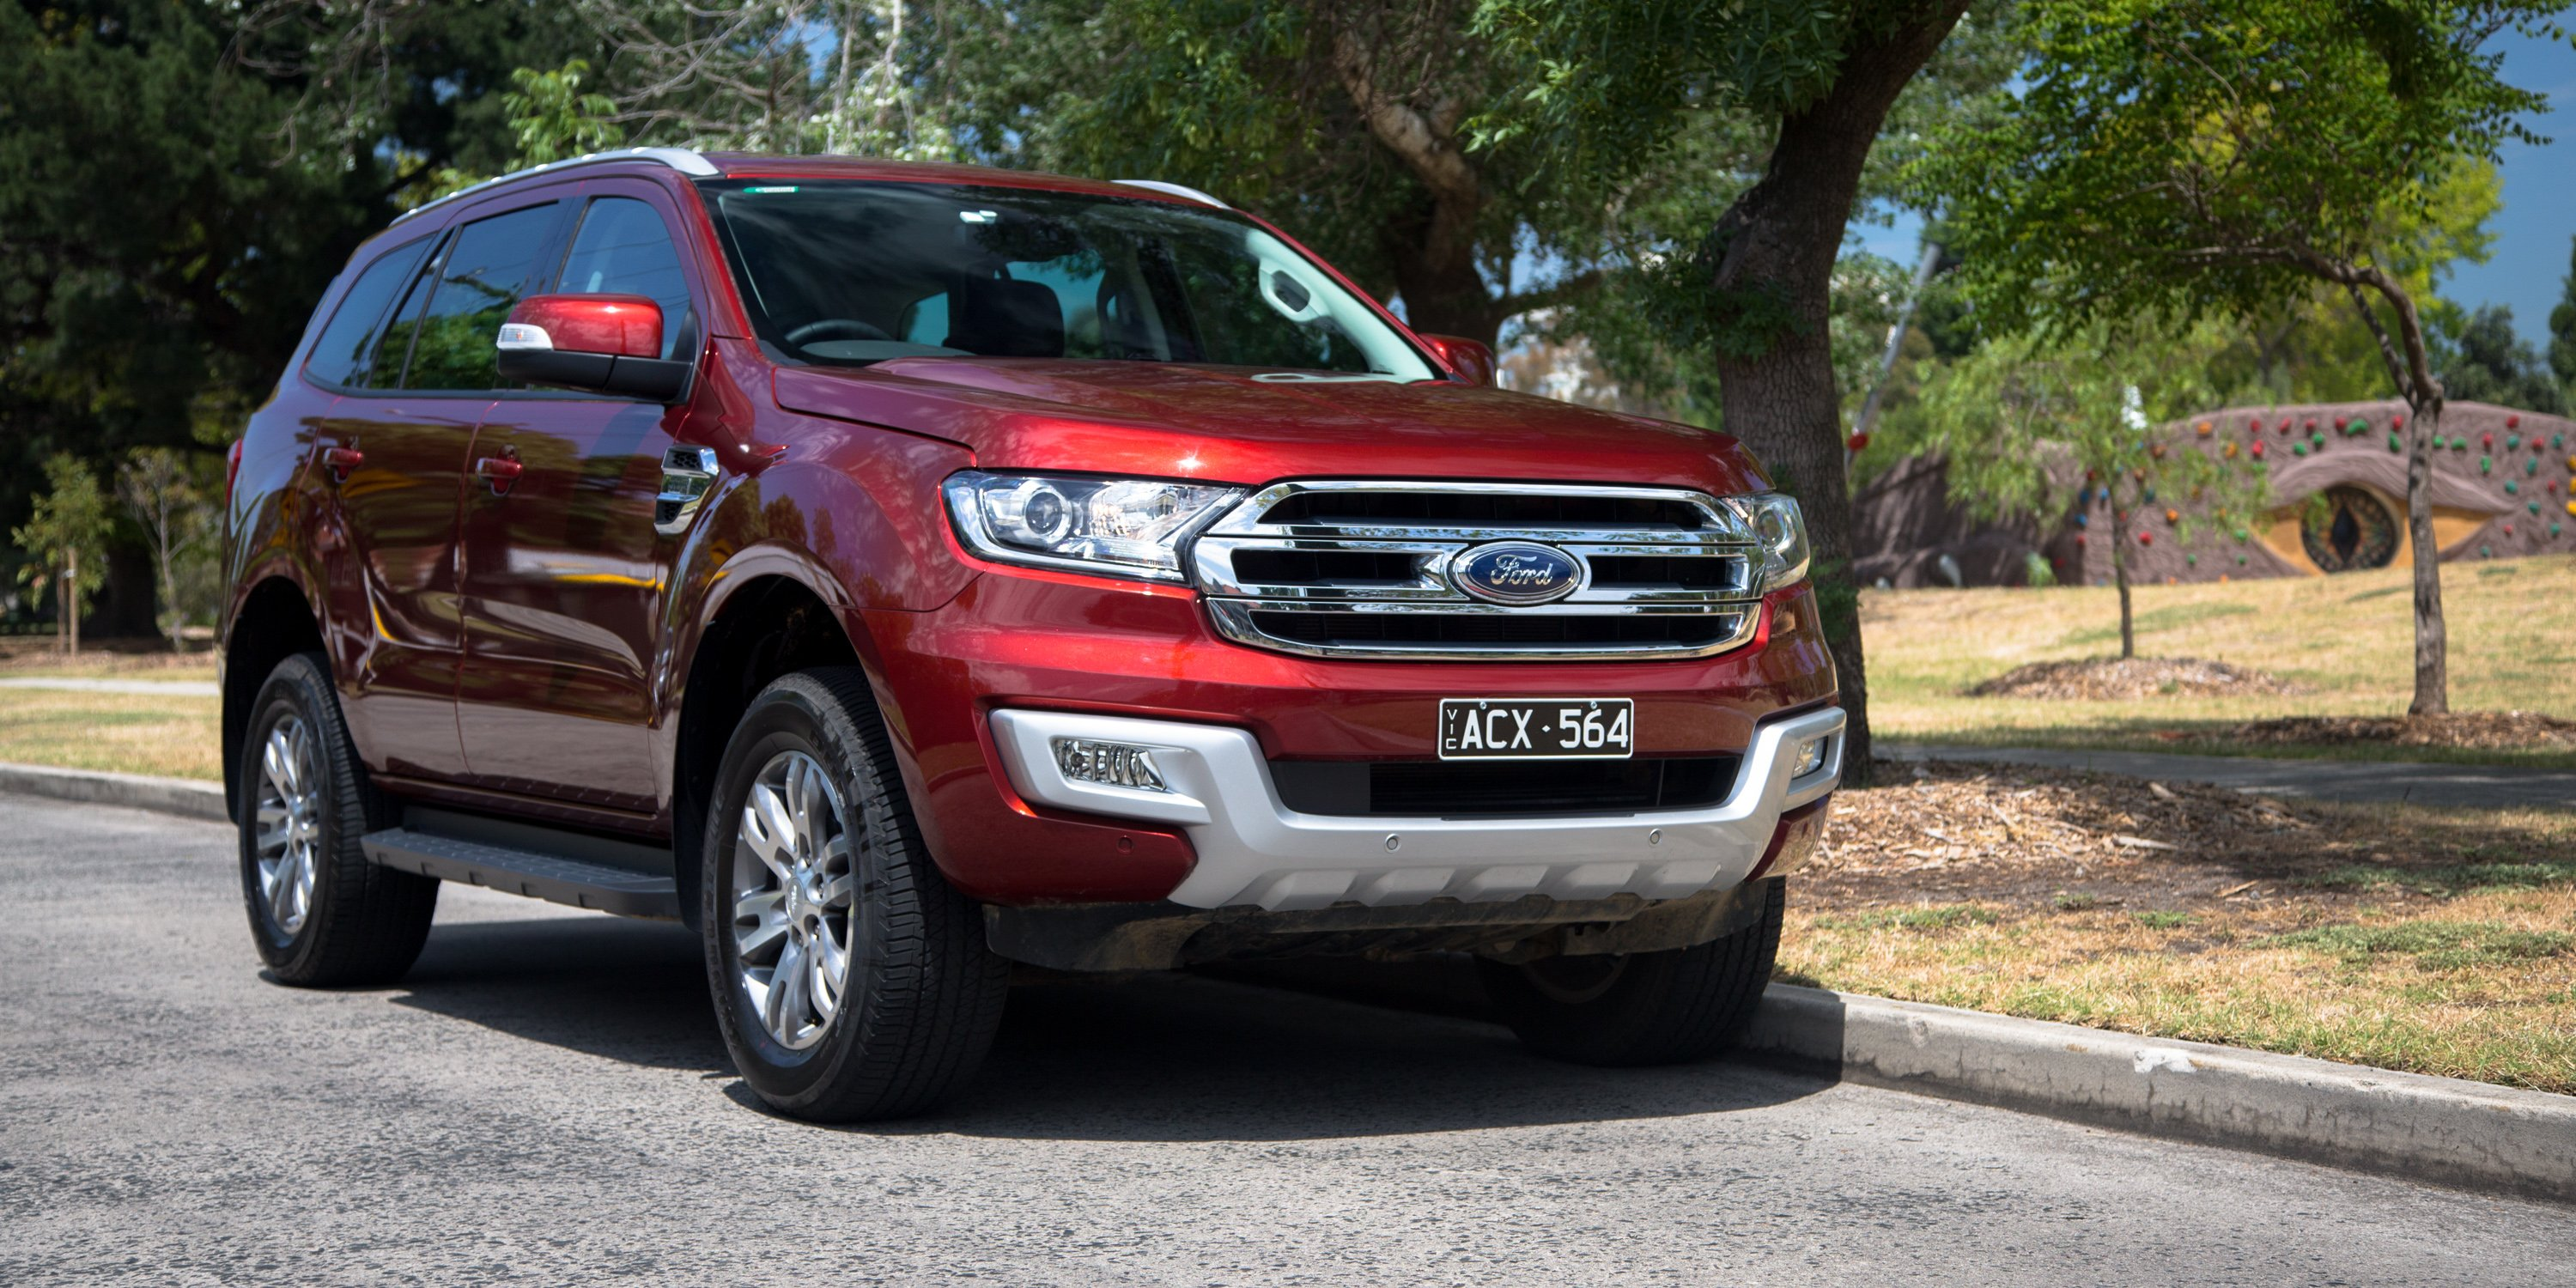 2015 ford everest review 2017 2018 best cars reviews. Black Bedroom Furniture Sets. Home Design Ideas